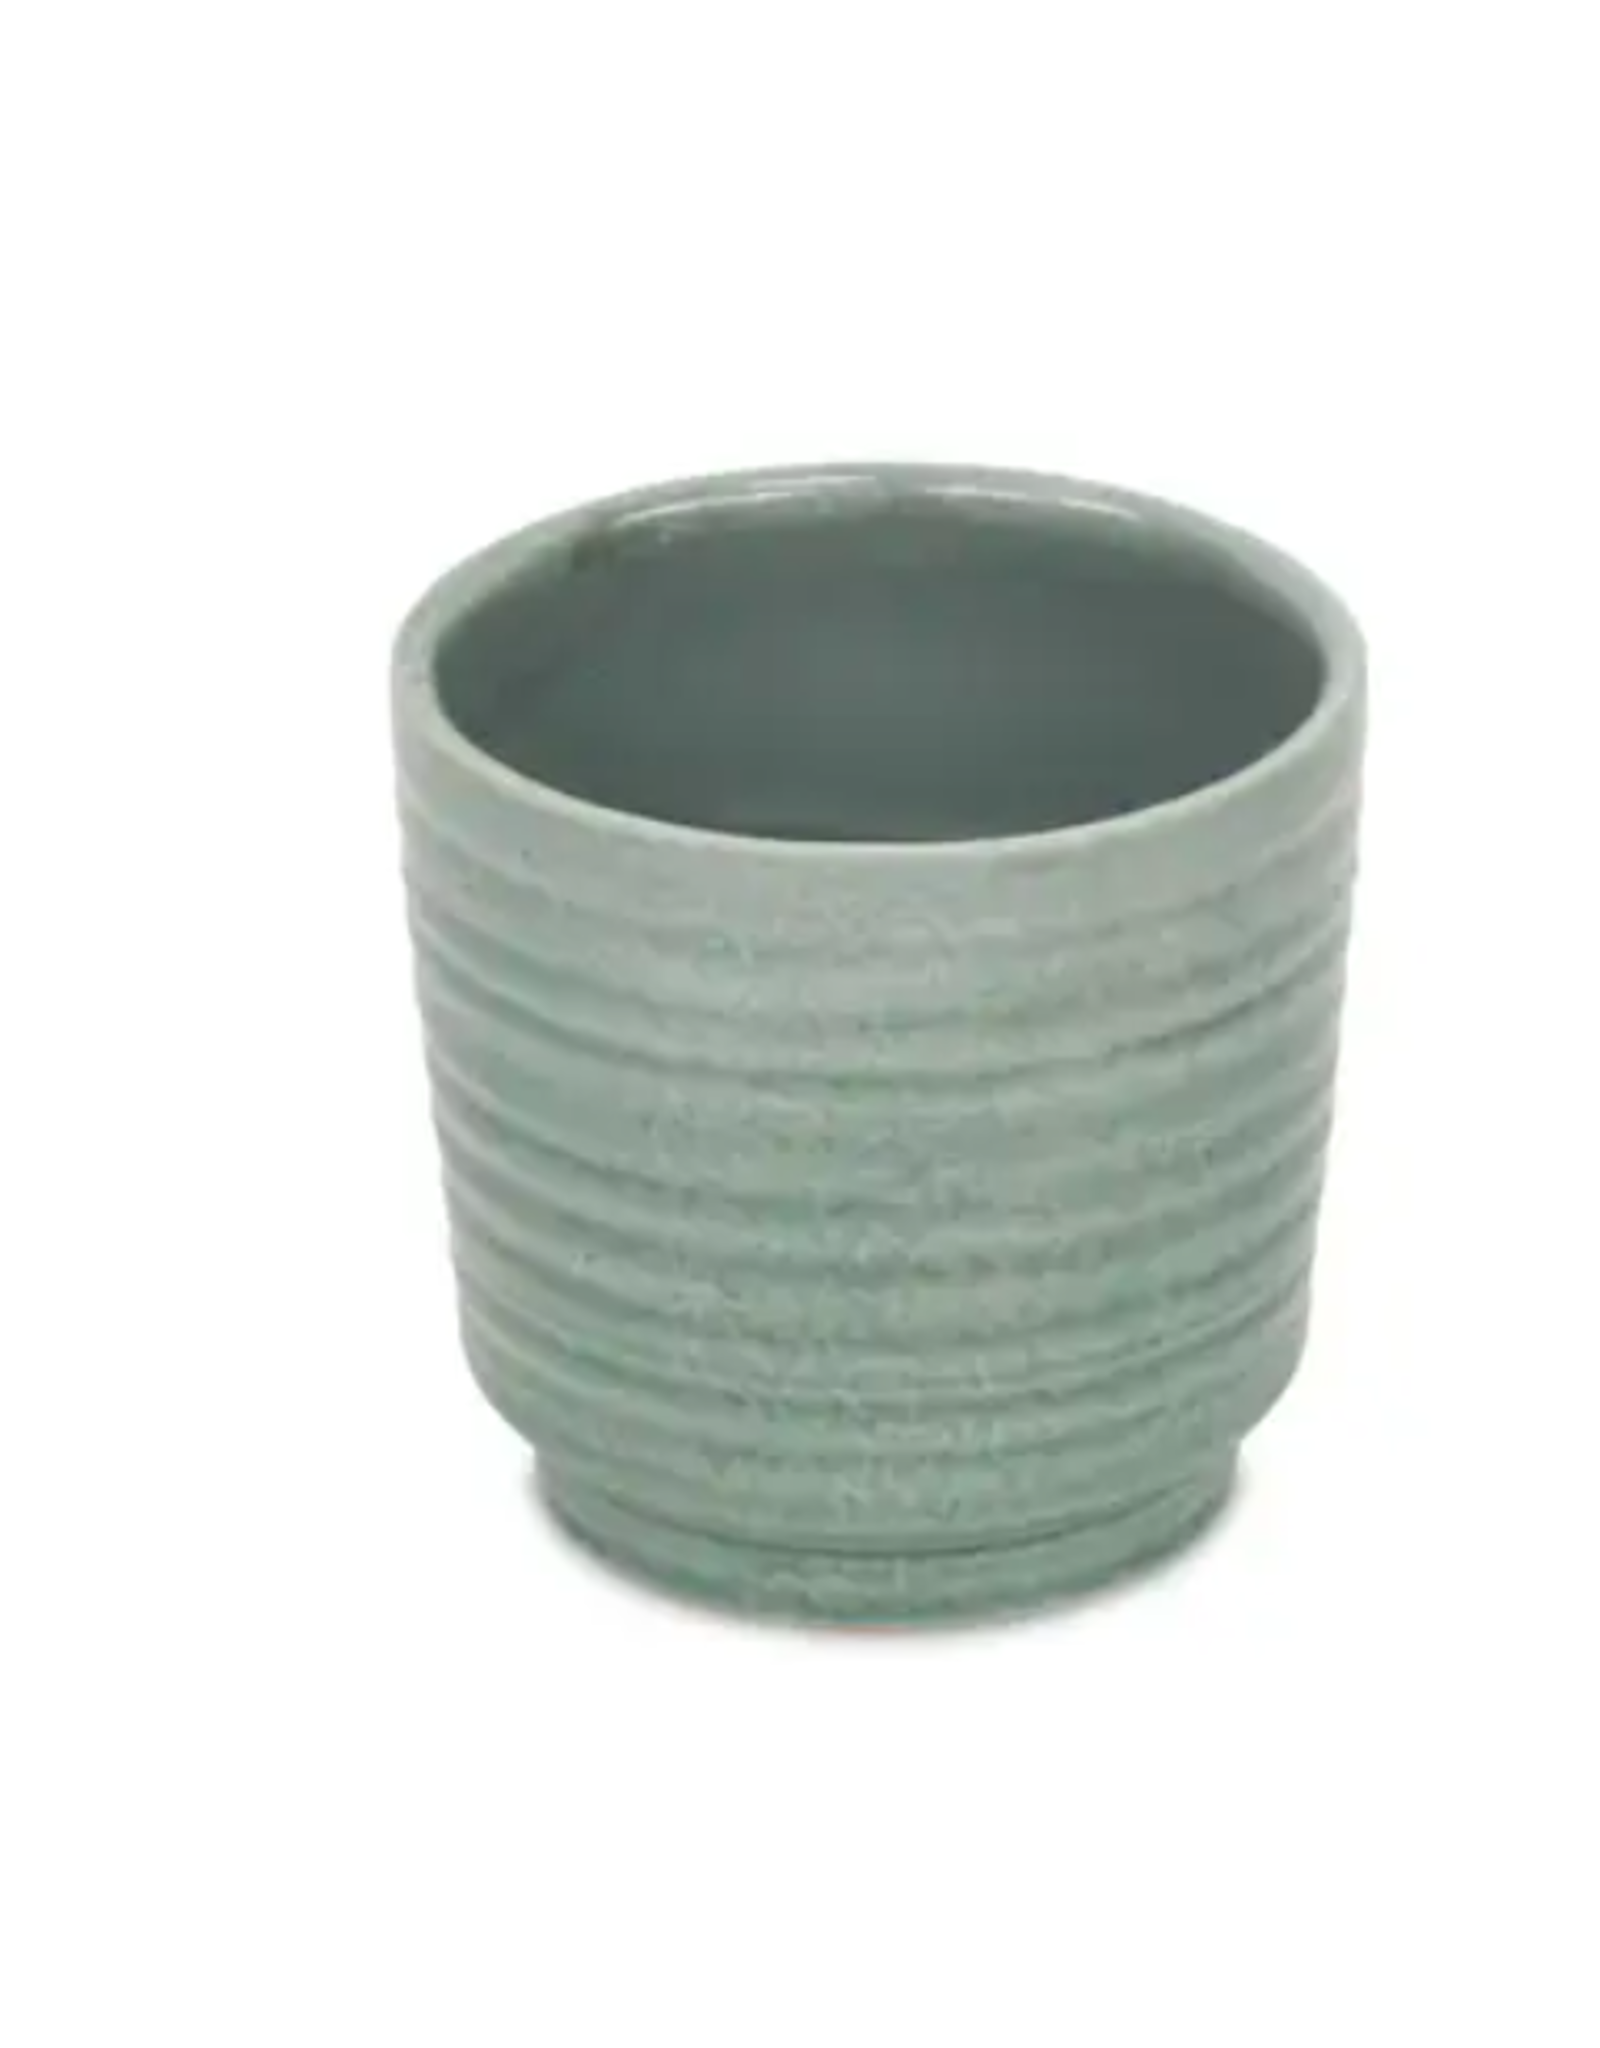 """Cheungs Ripple Pot in Green 4.5"""" x 4.25"""""""